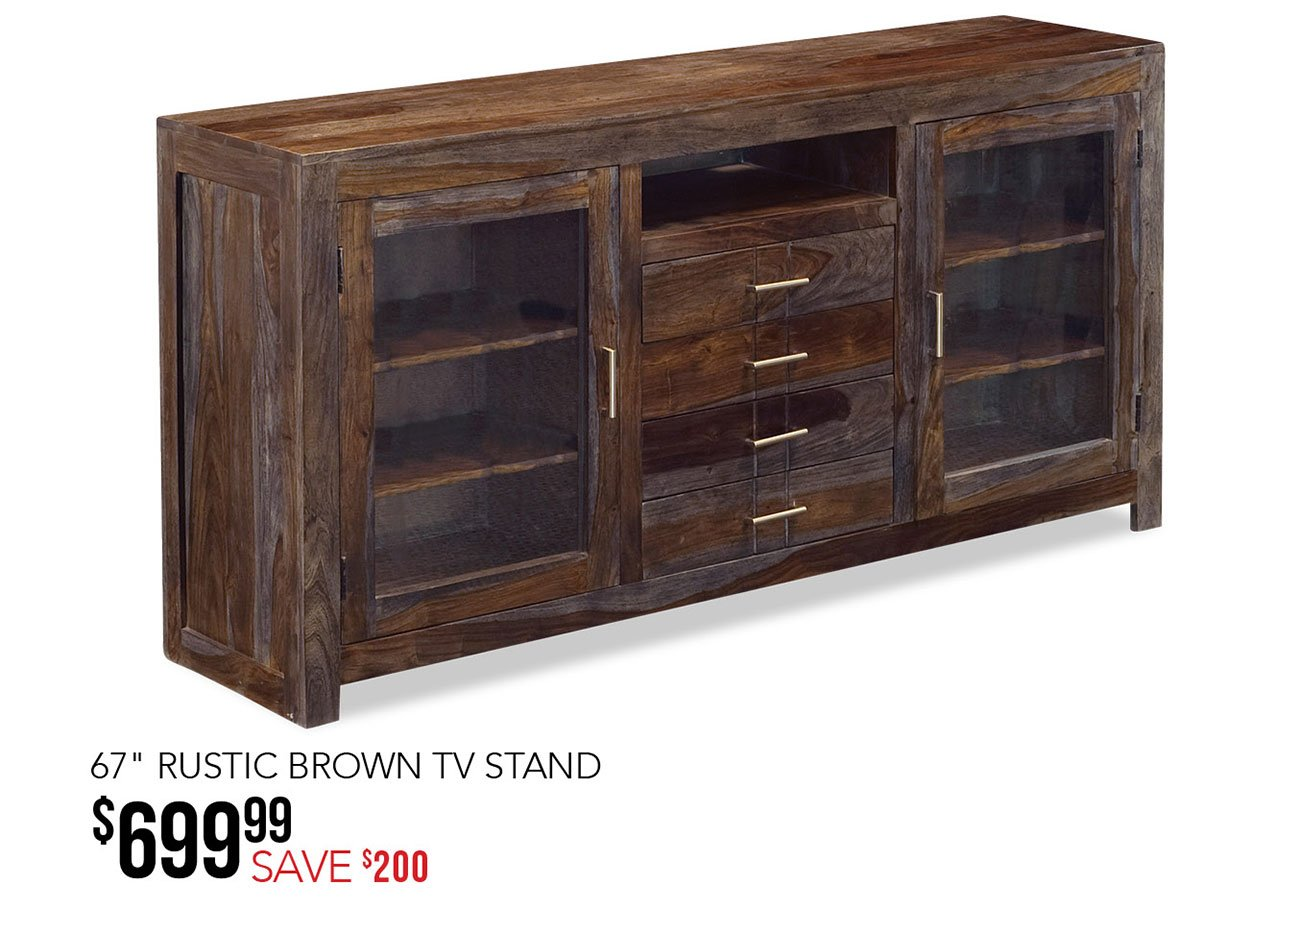 67-inch-rustic-brown-tv-stand